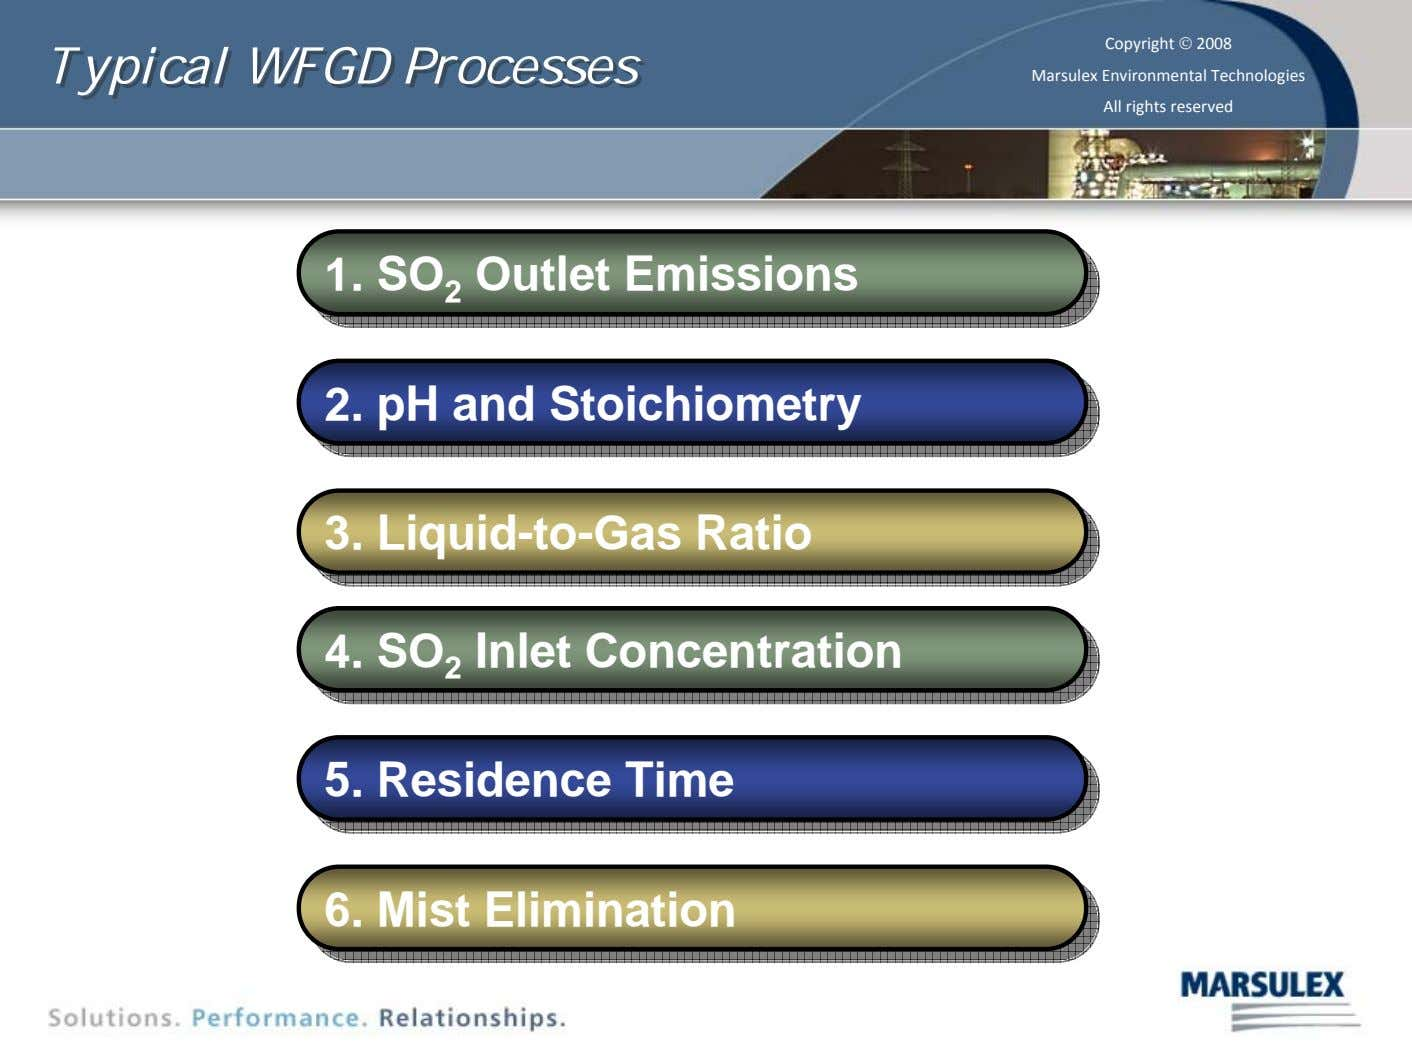 Typical Typical WFGD WFGD Processes Processes Copyright © 2008 Marsulex Environmental Technologies All rights reserved 1.